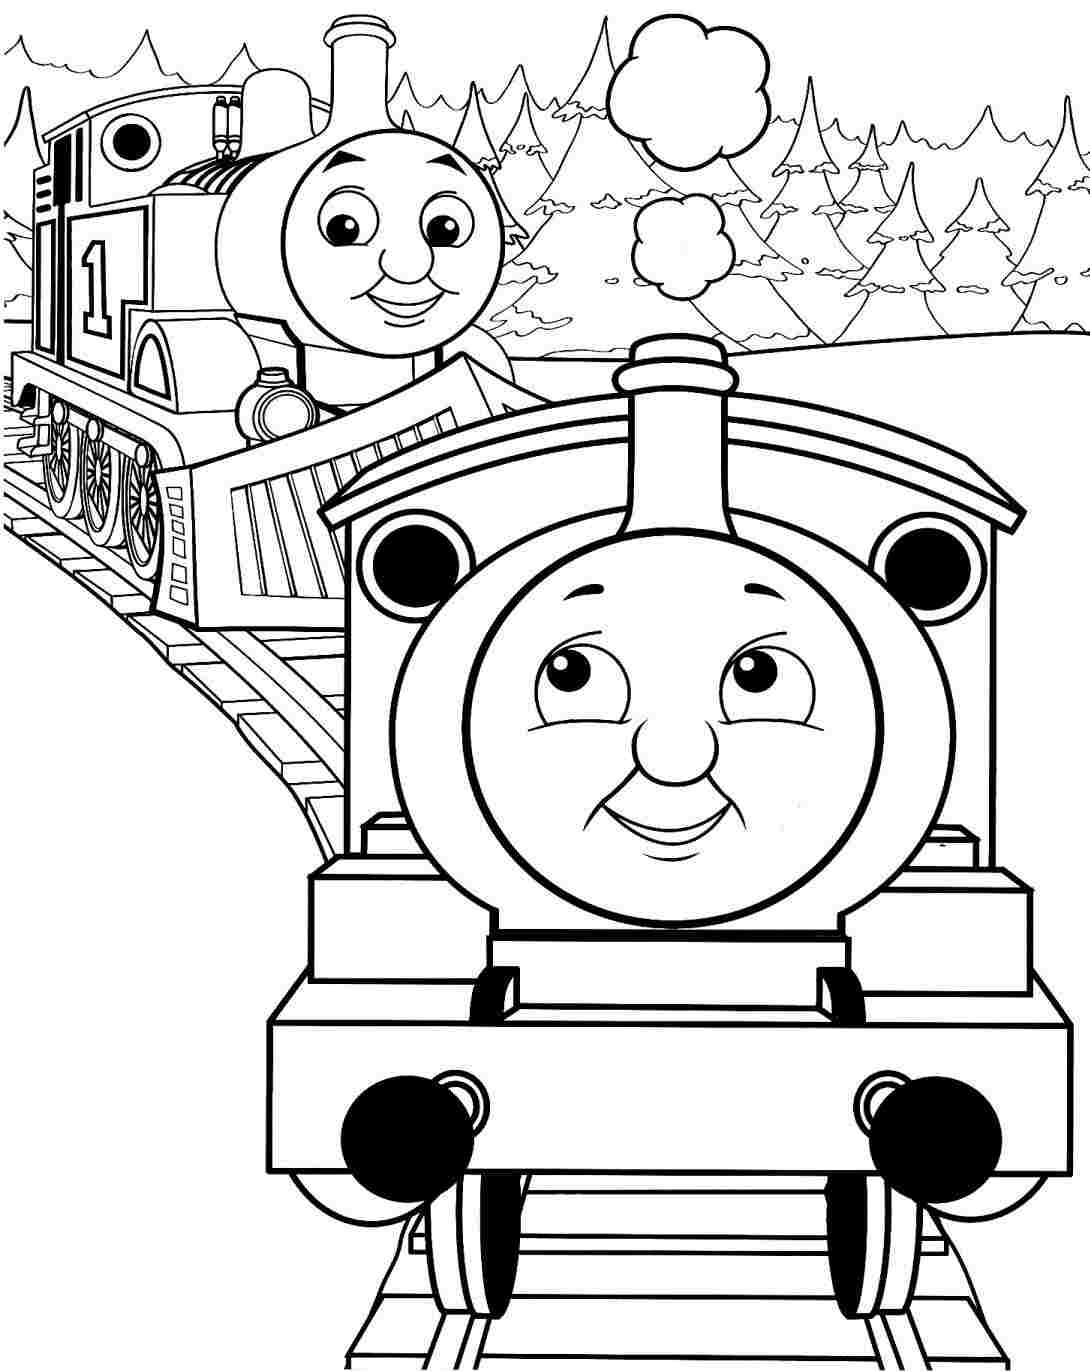 thomas and friends drawing pages free printable halloween ideas kids activities thomas drawing and thomas friends pages